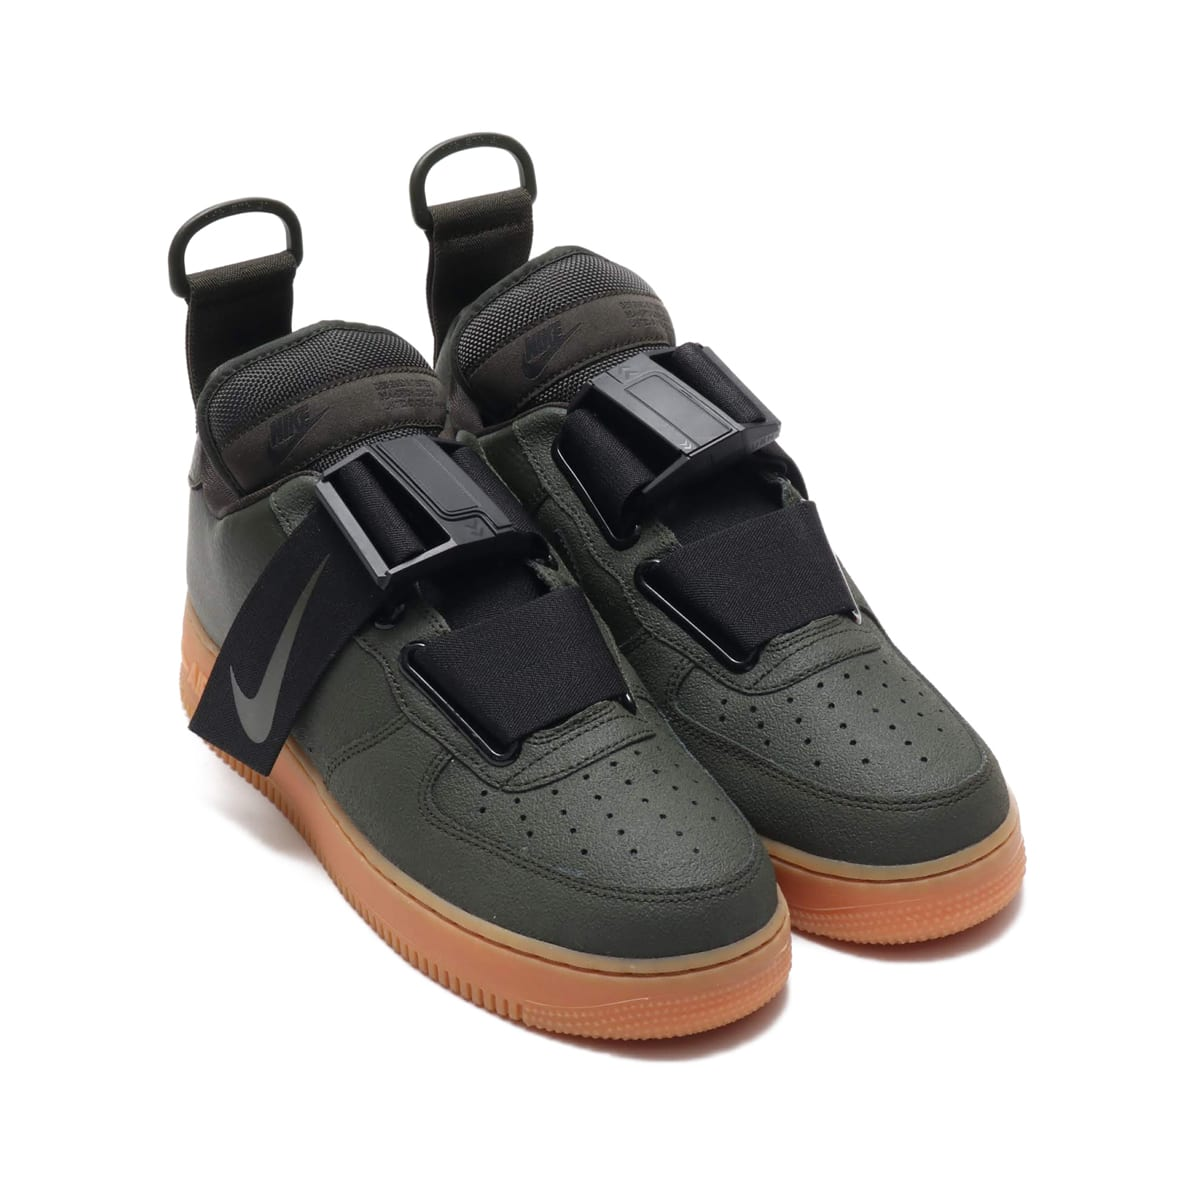 NIKE AIR FORCE 1 UTILITY  SEQUOIA/BLACK-GUM MED BROWN 18HO-I_photo_large